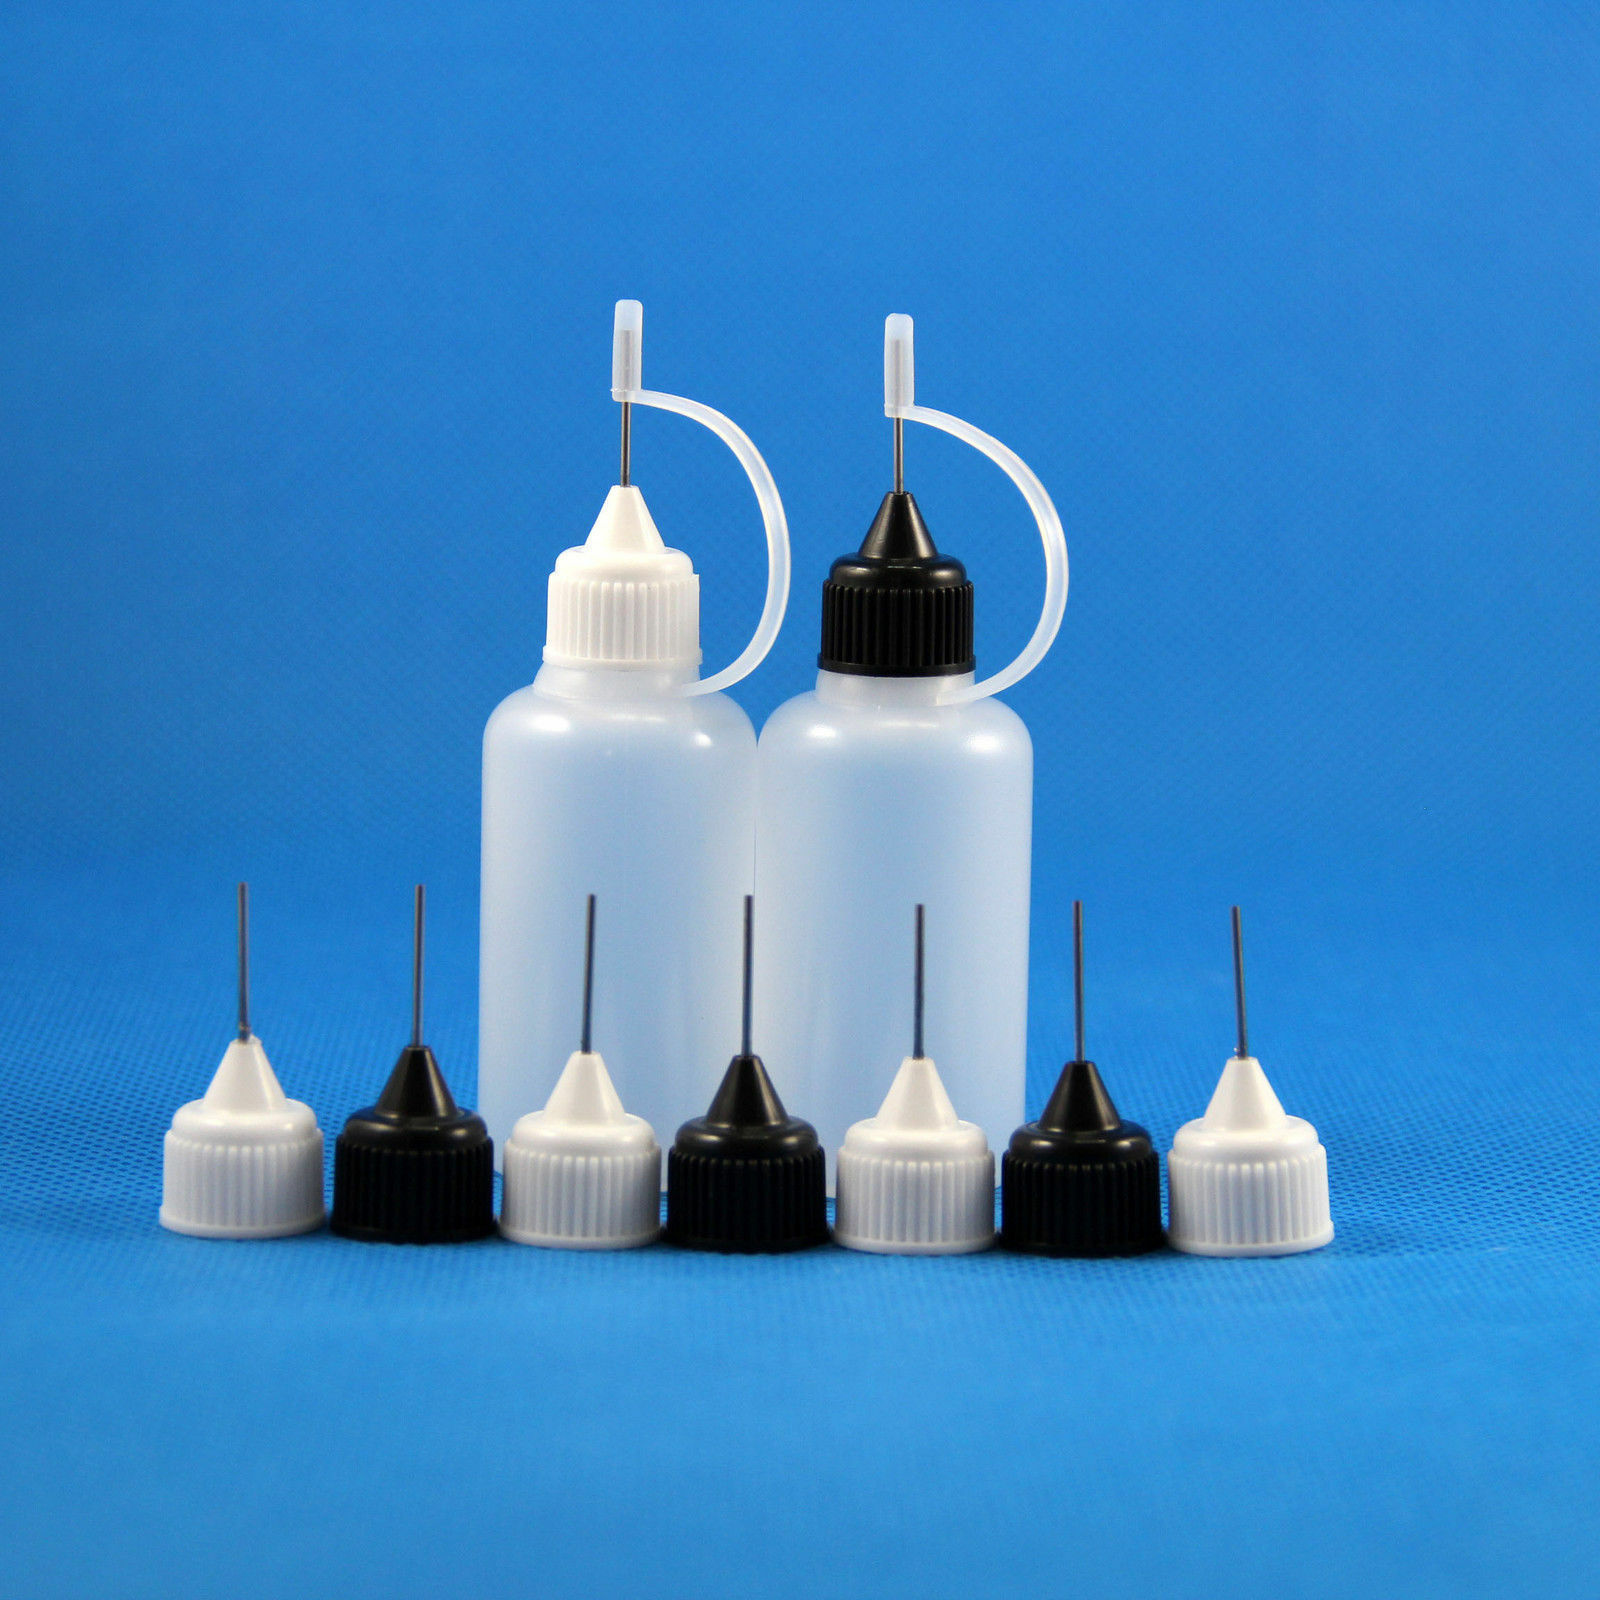 10pcs 3ml 5ml 10ml 15ml 30ml 50ml Plastic Squeezable Drop Bottle Metal Dropper Needle Tip Liquid Cig Oil E Juice Fill Container